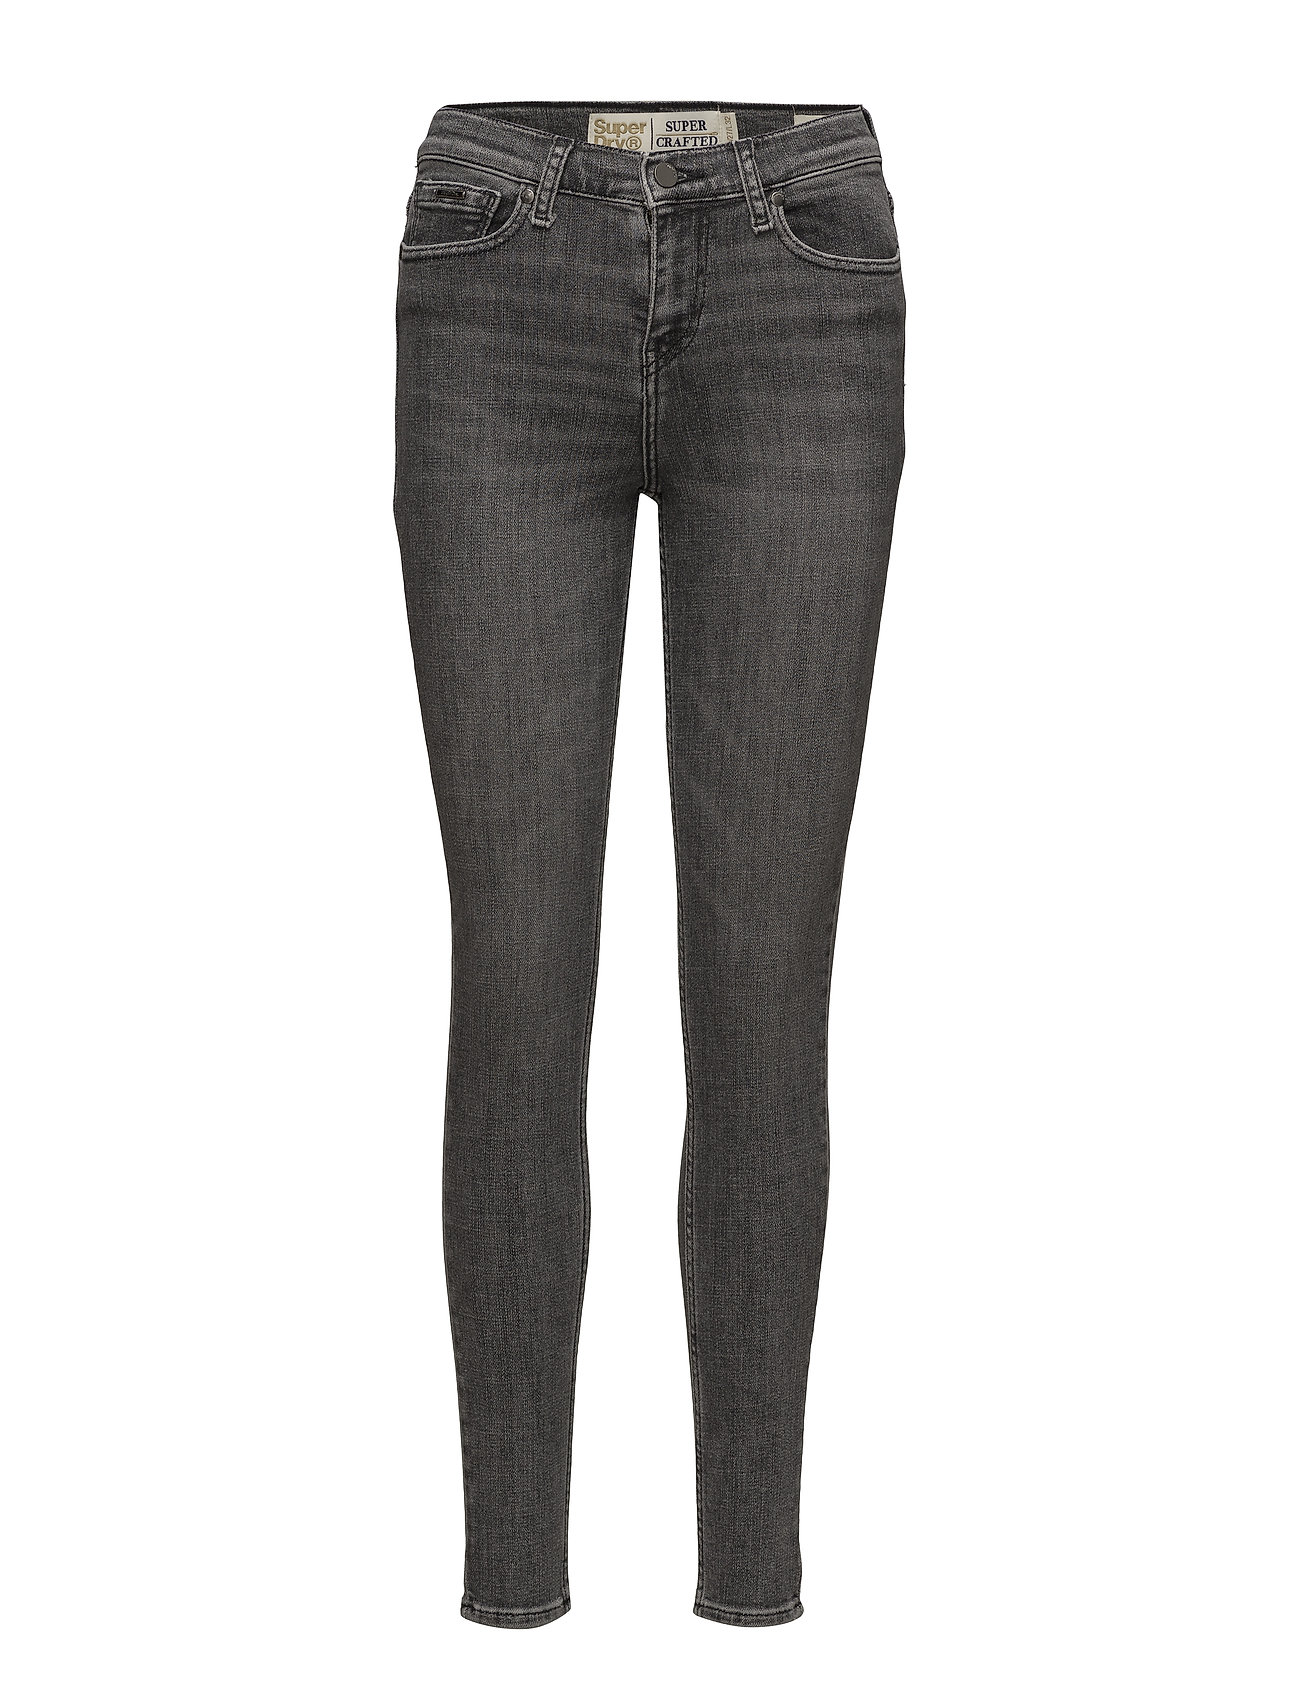 Super Crafted- Skinny Mid Rise (Grey Nero) (£41.99) - Superdry ... e55a23046d2